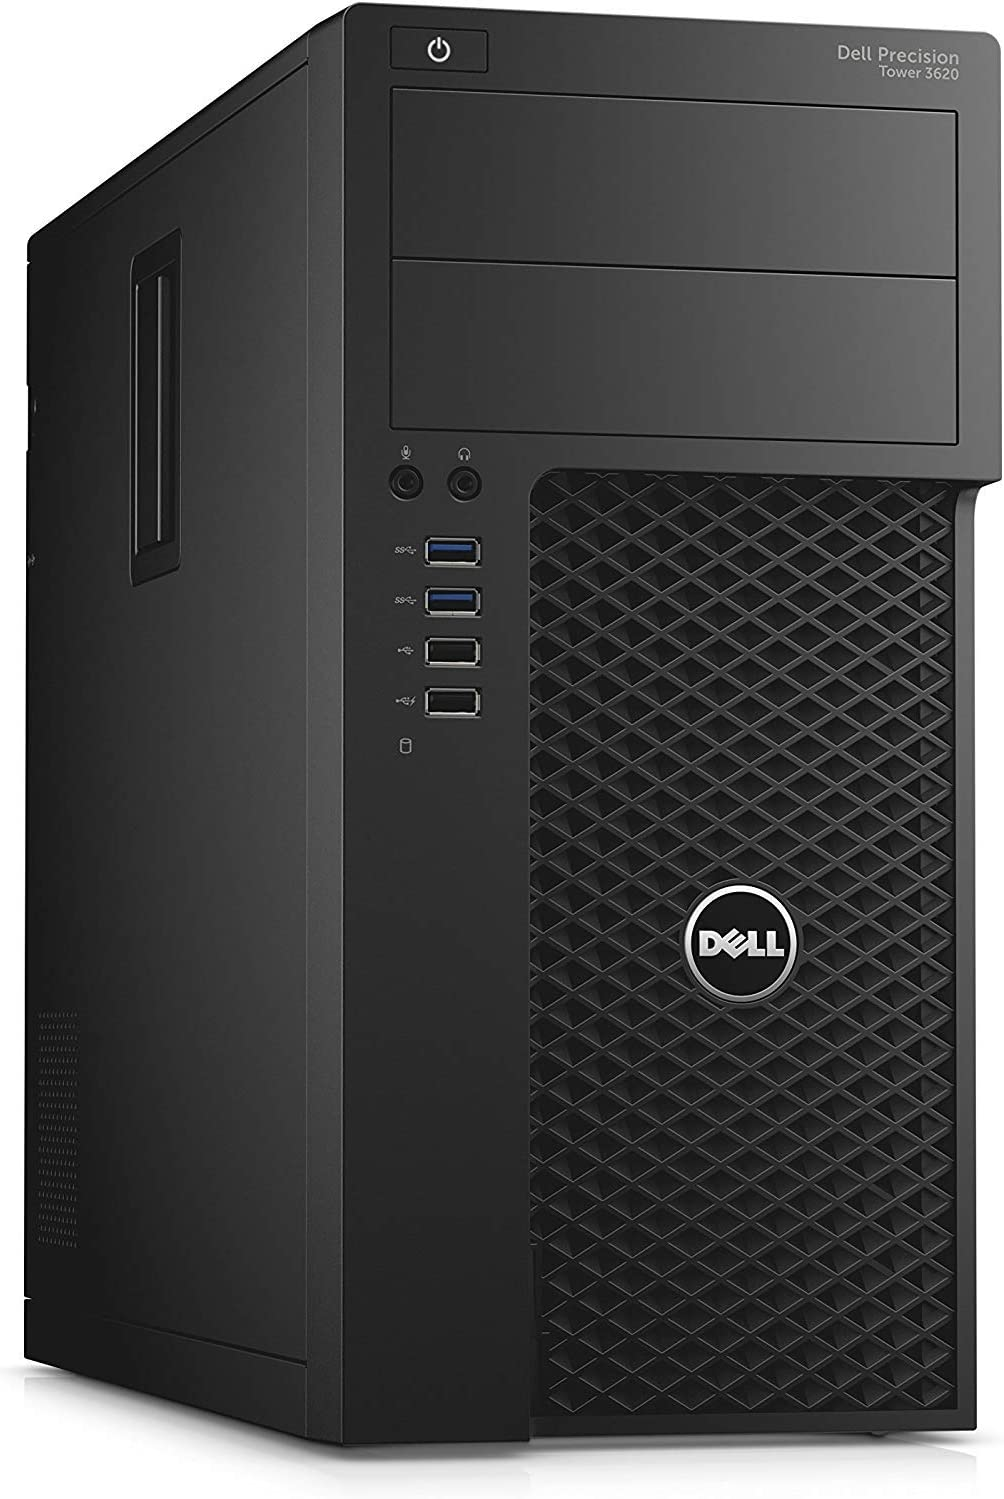 Dell Precision Tower 3620 Core i7-6700 16GB DDR4 512GB SSD DVDRW Nvidia Quadro K2200 4GB Windows 10 Pro Workstation PC (Renewed)